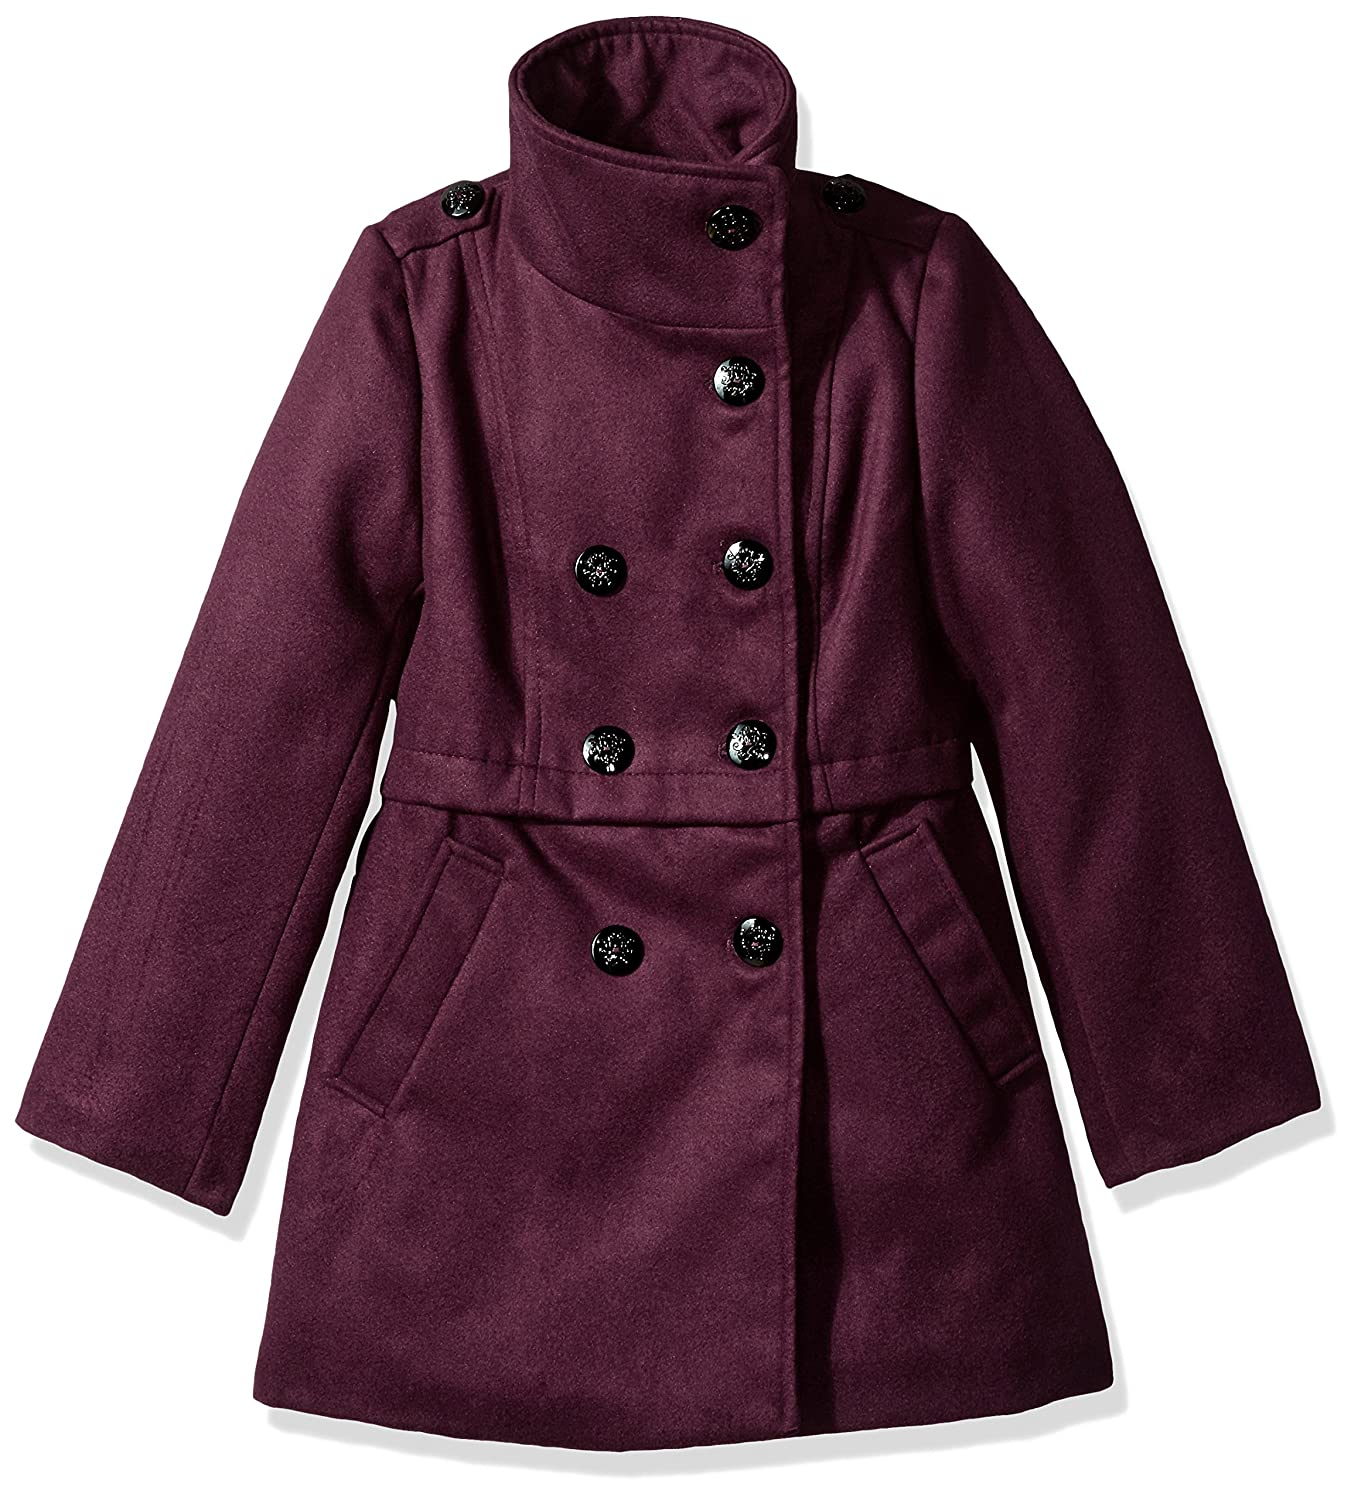 Fancy Jessica Simpson Girls Big Girls Faux Wool Dress Coat